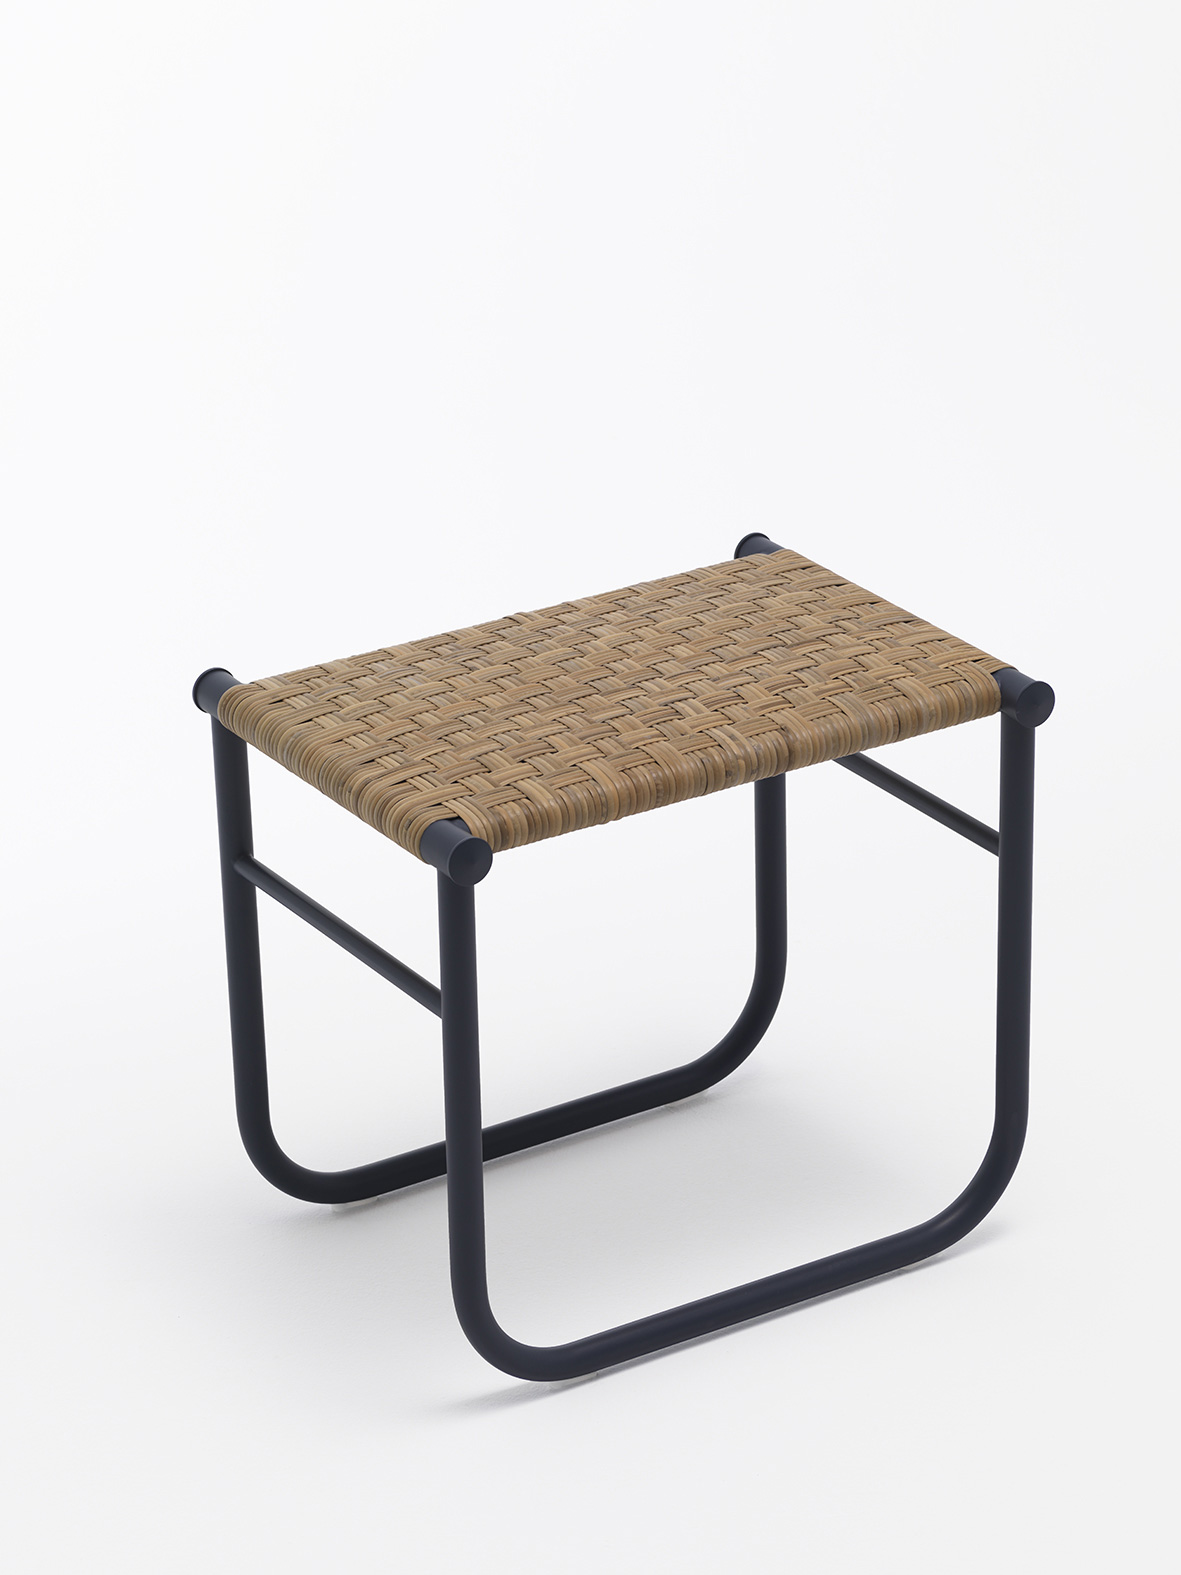 39 charlotte perriand an icon of modernity 39 exhibition at cult. Black Bedroom Furniture Sets. Home Design Ideas